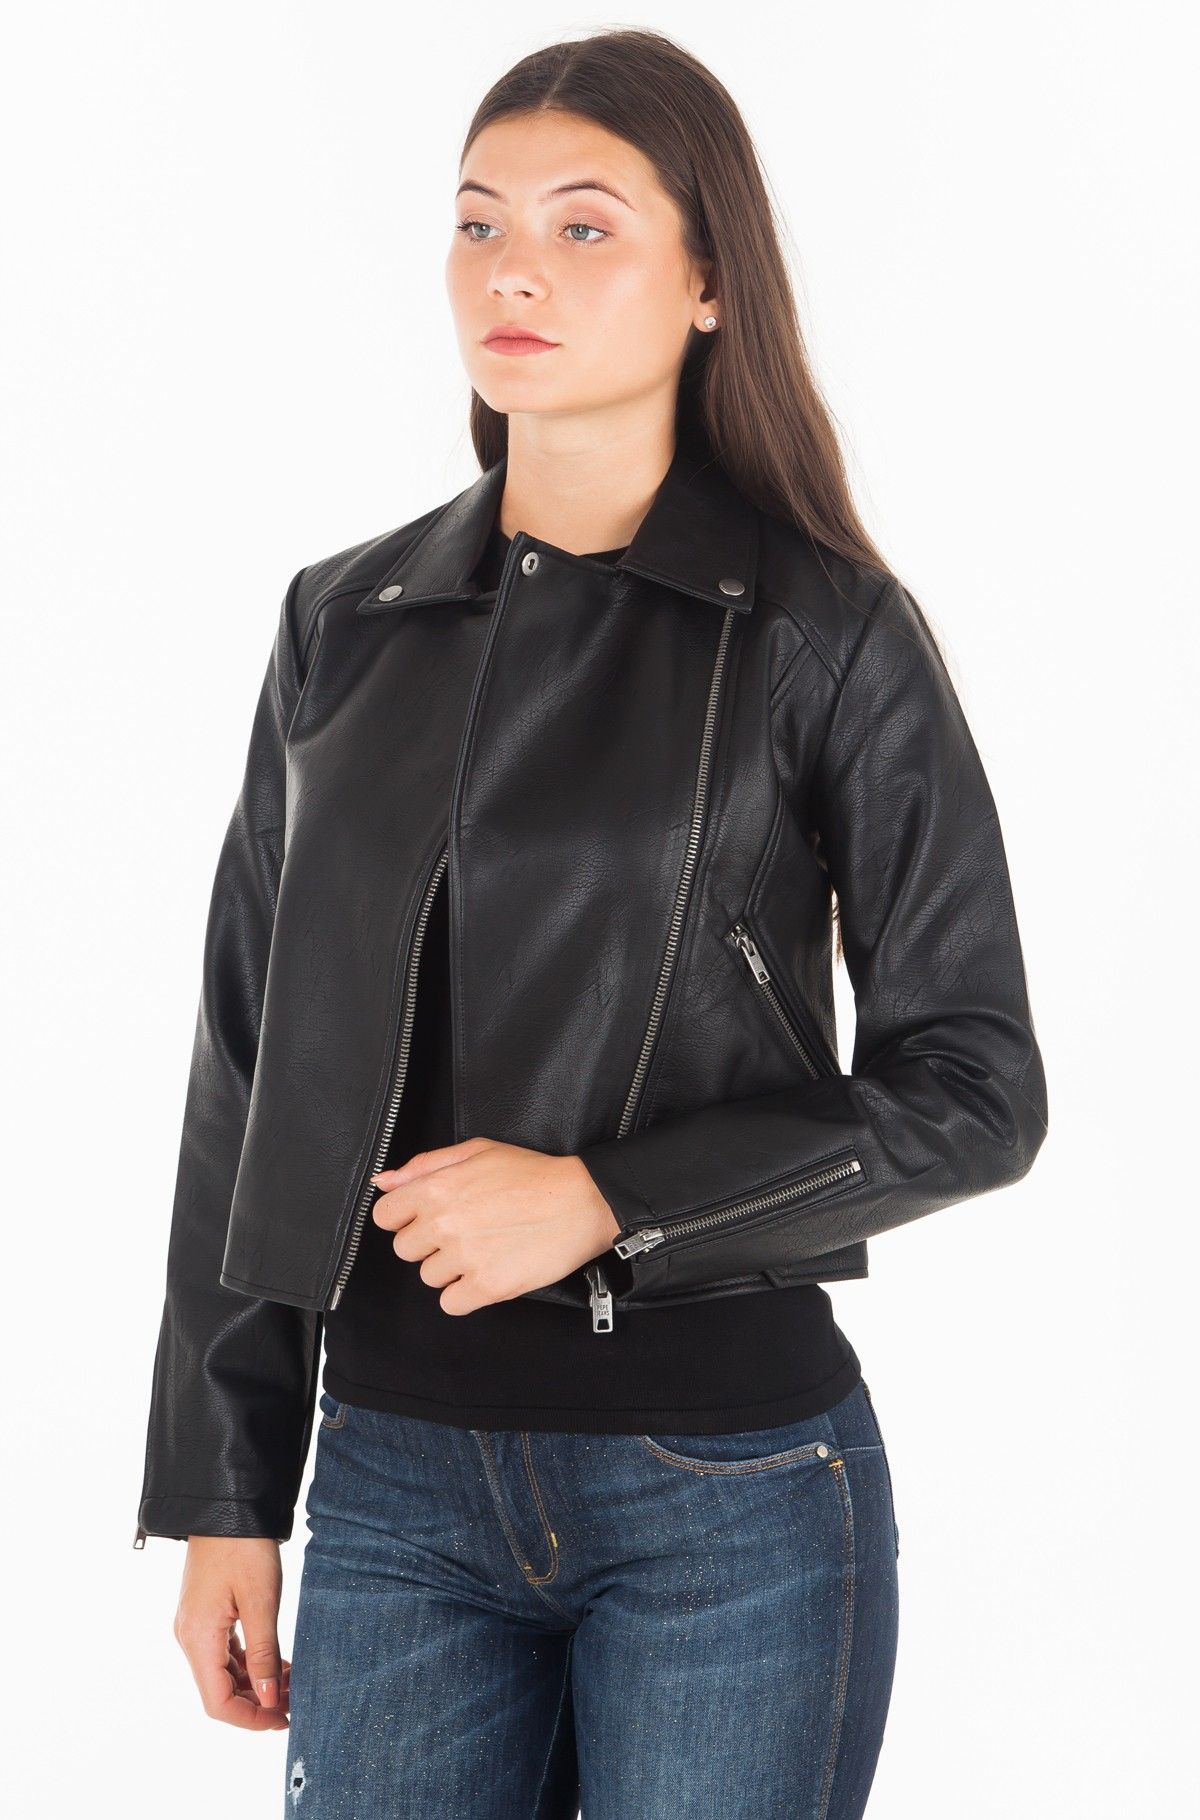 Leather jacket OLGA/PL401491	-full-1